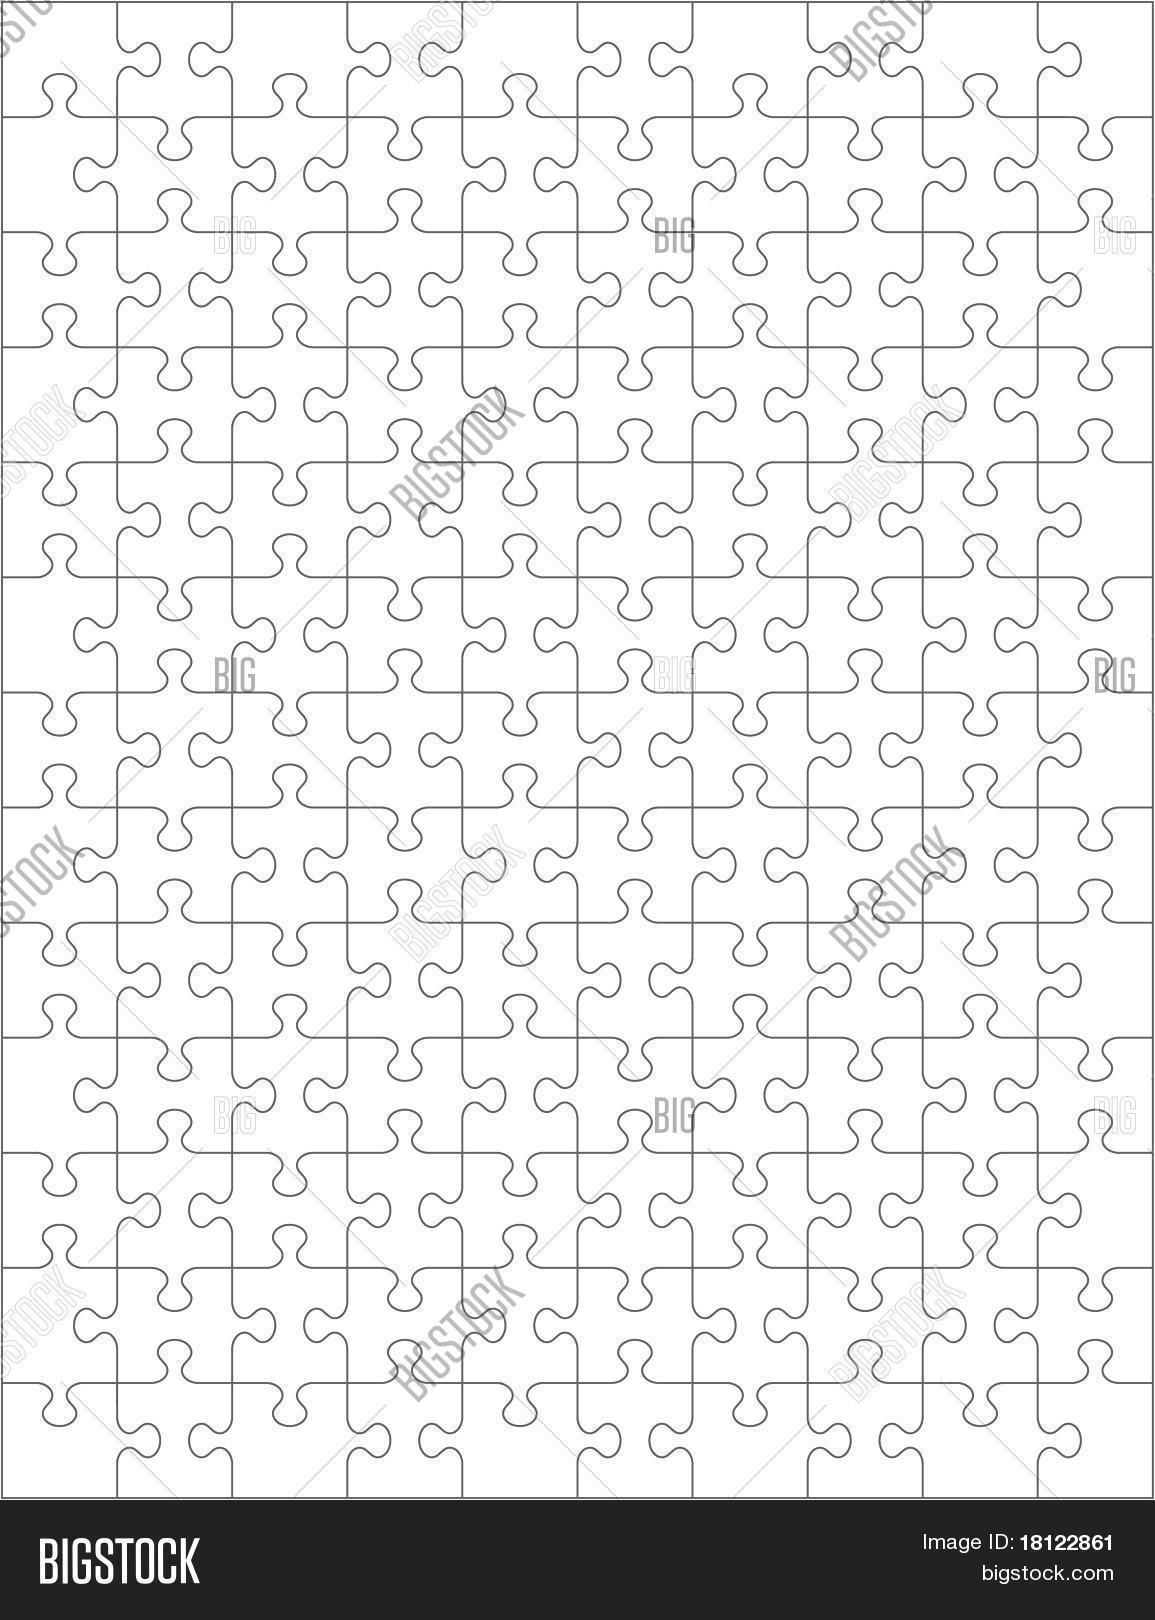 Jig Saw Puzzle Template